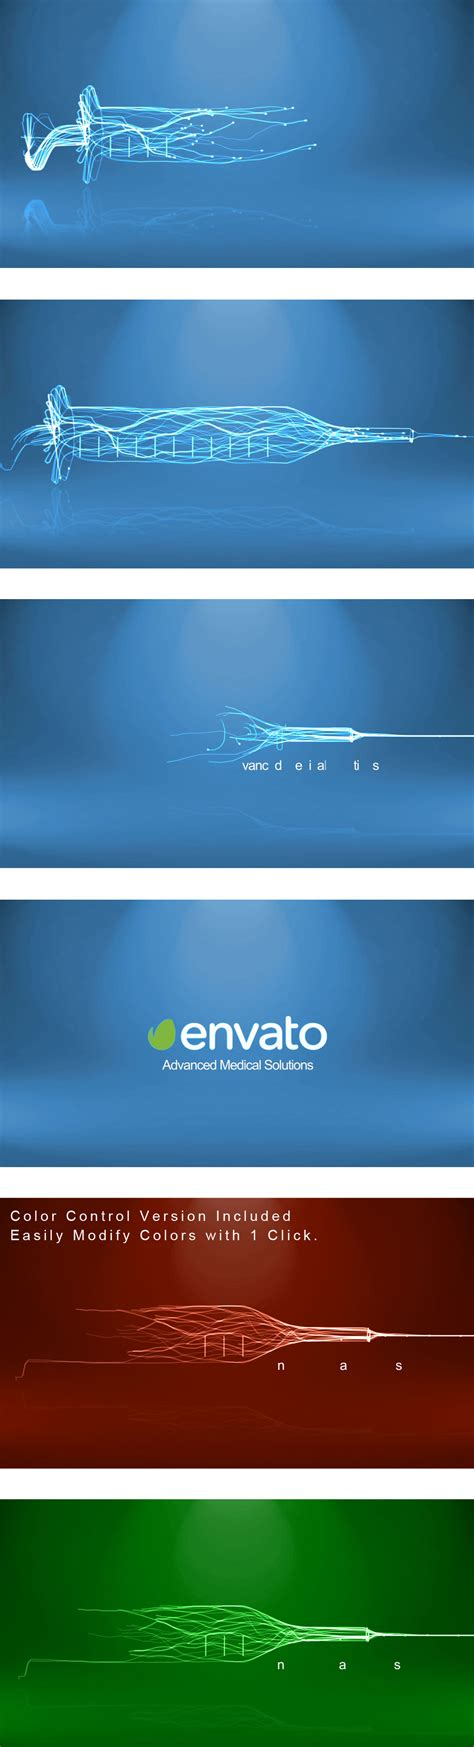 medical care syringe logo medical envato videohive